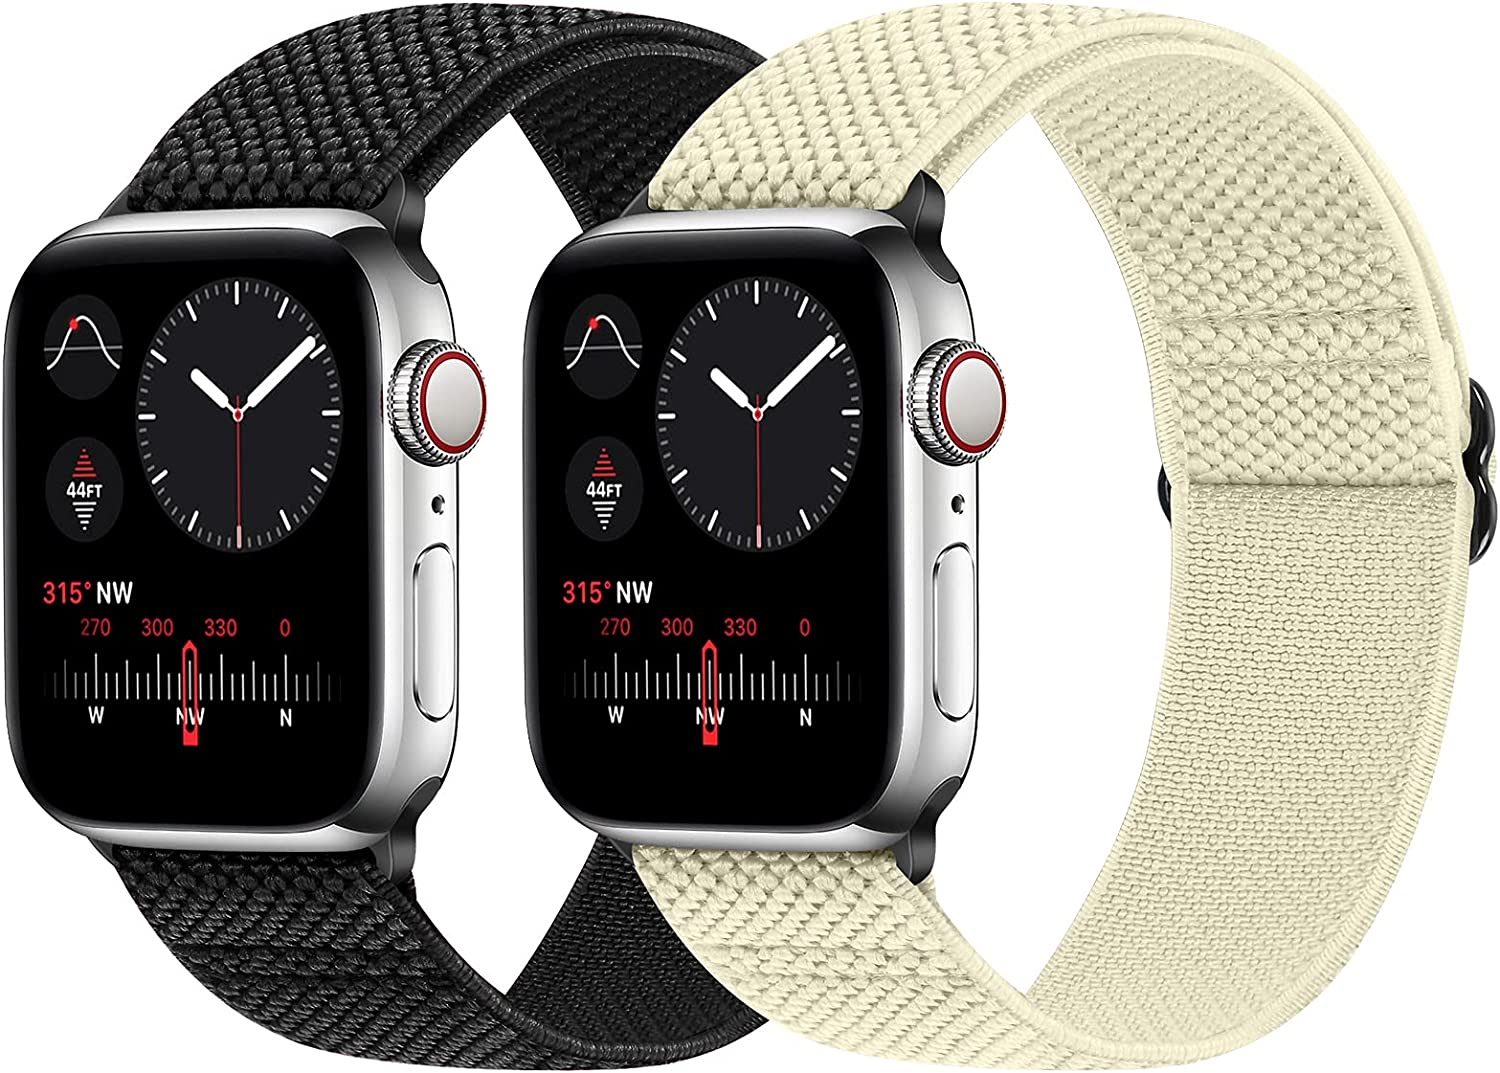 WNIPH Stretchy Nylon Solo Loop Bands Compatible with Apple Watch 44mm/42mm/40mm/38mm, Adjustable Elastic Braided Sports Replacement Wristband for iWatch Series 6/5/4/3/2/1 SE Women Men